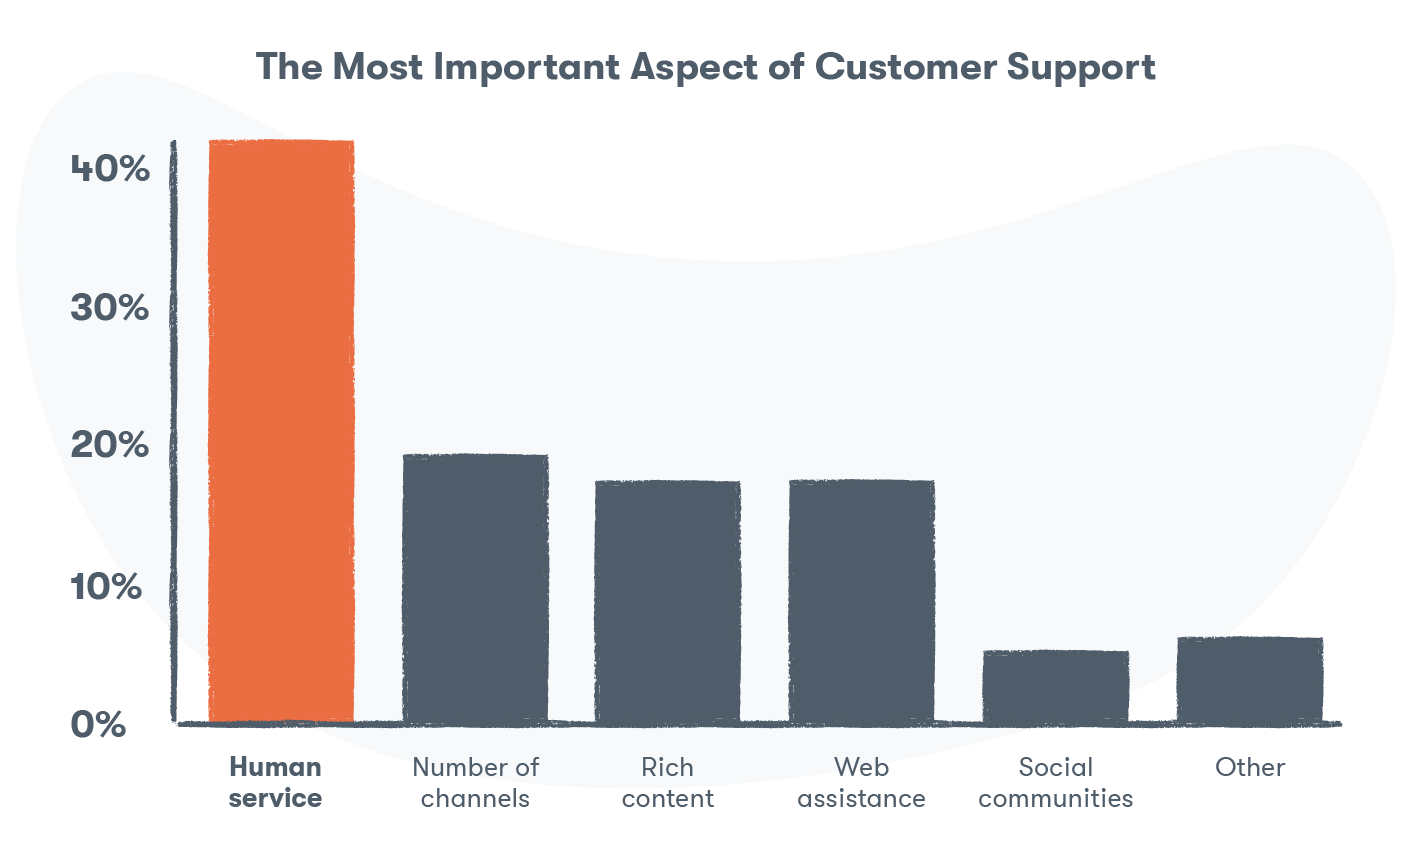 Personalization and a human voice are one of the best customer service tips